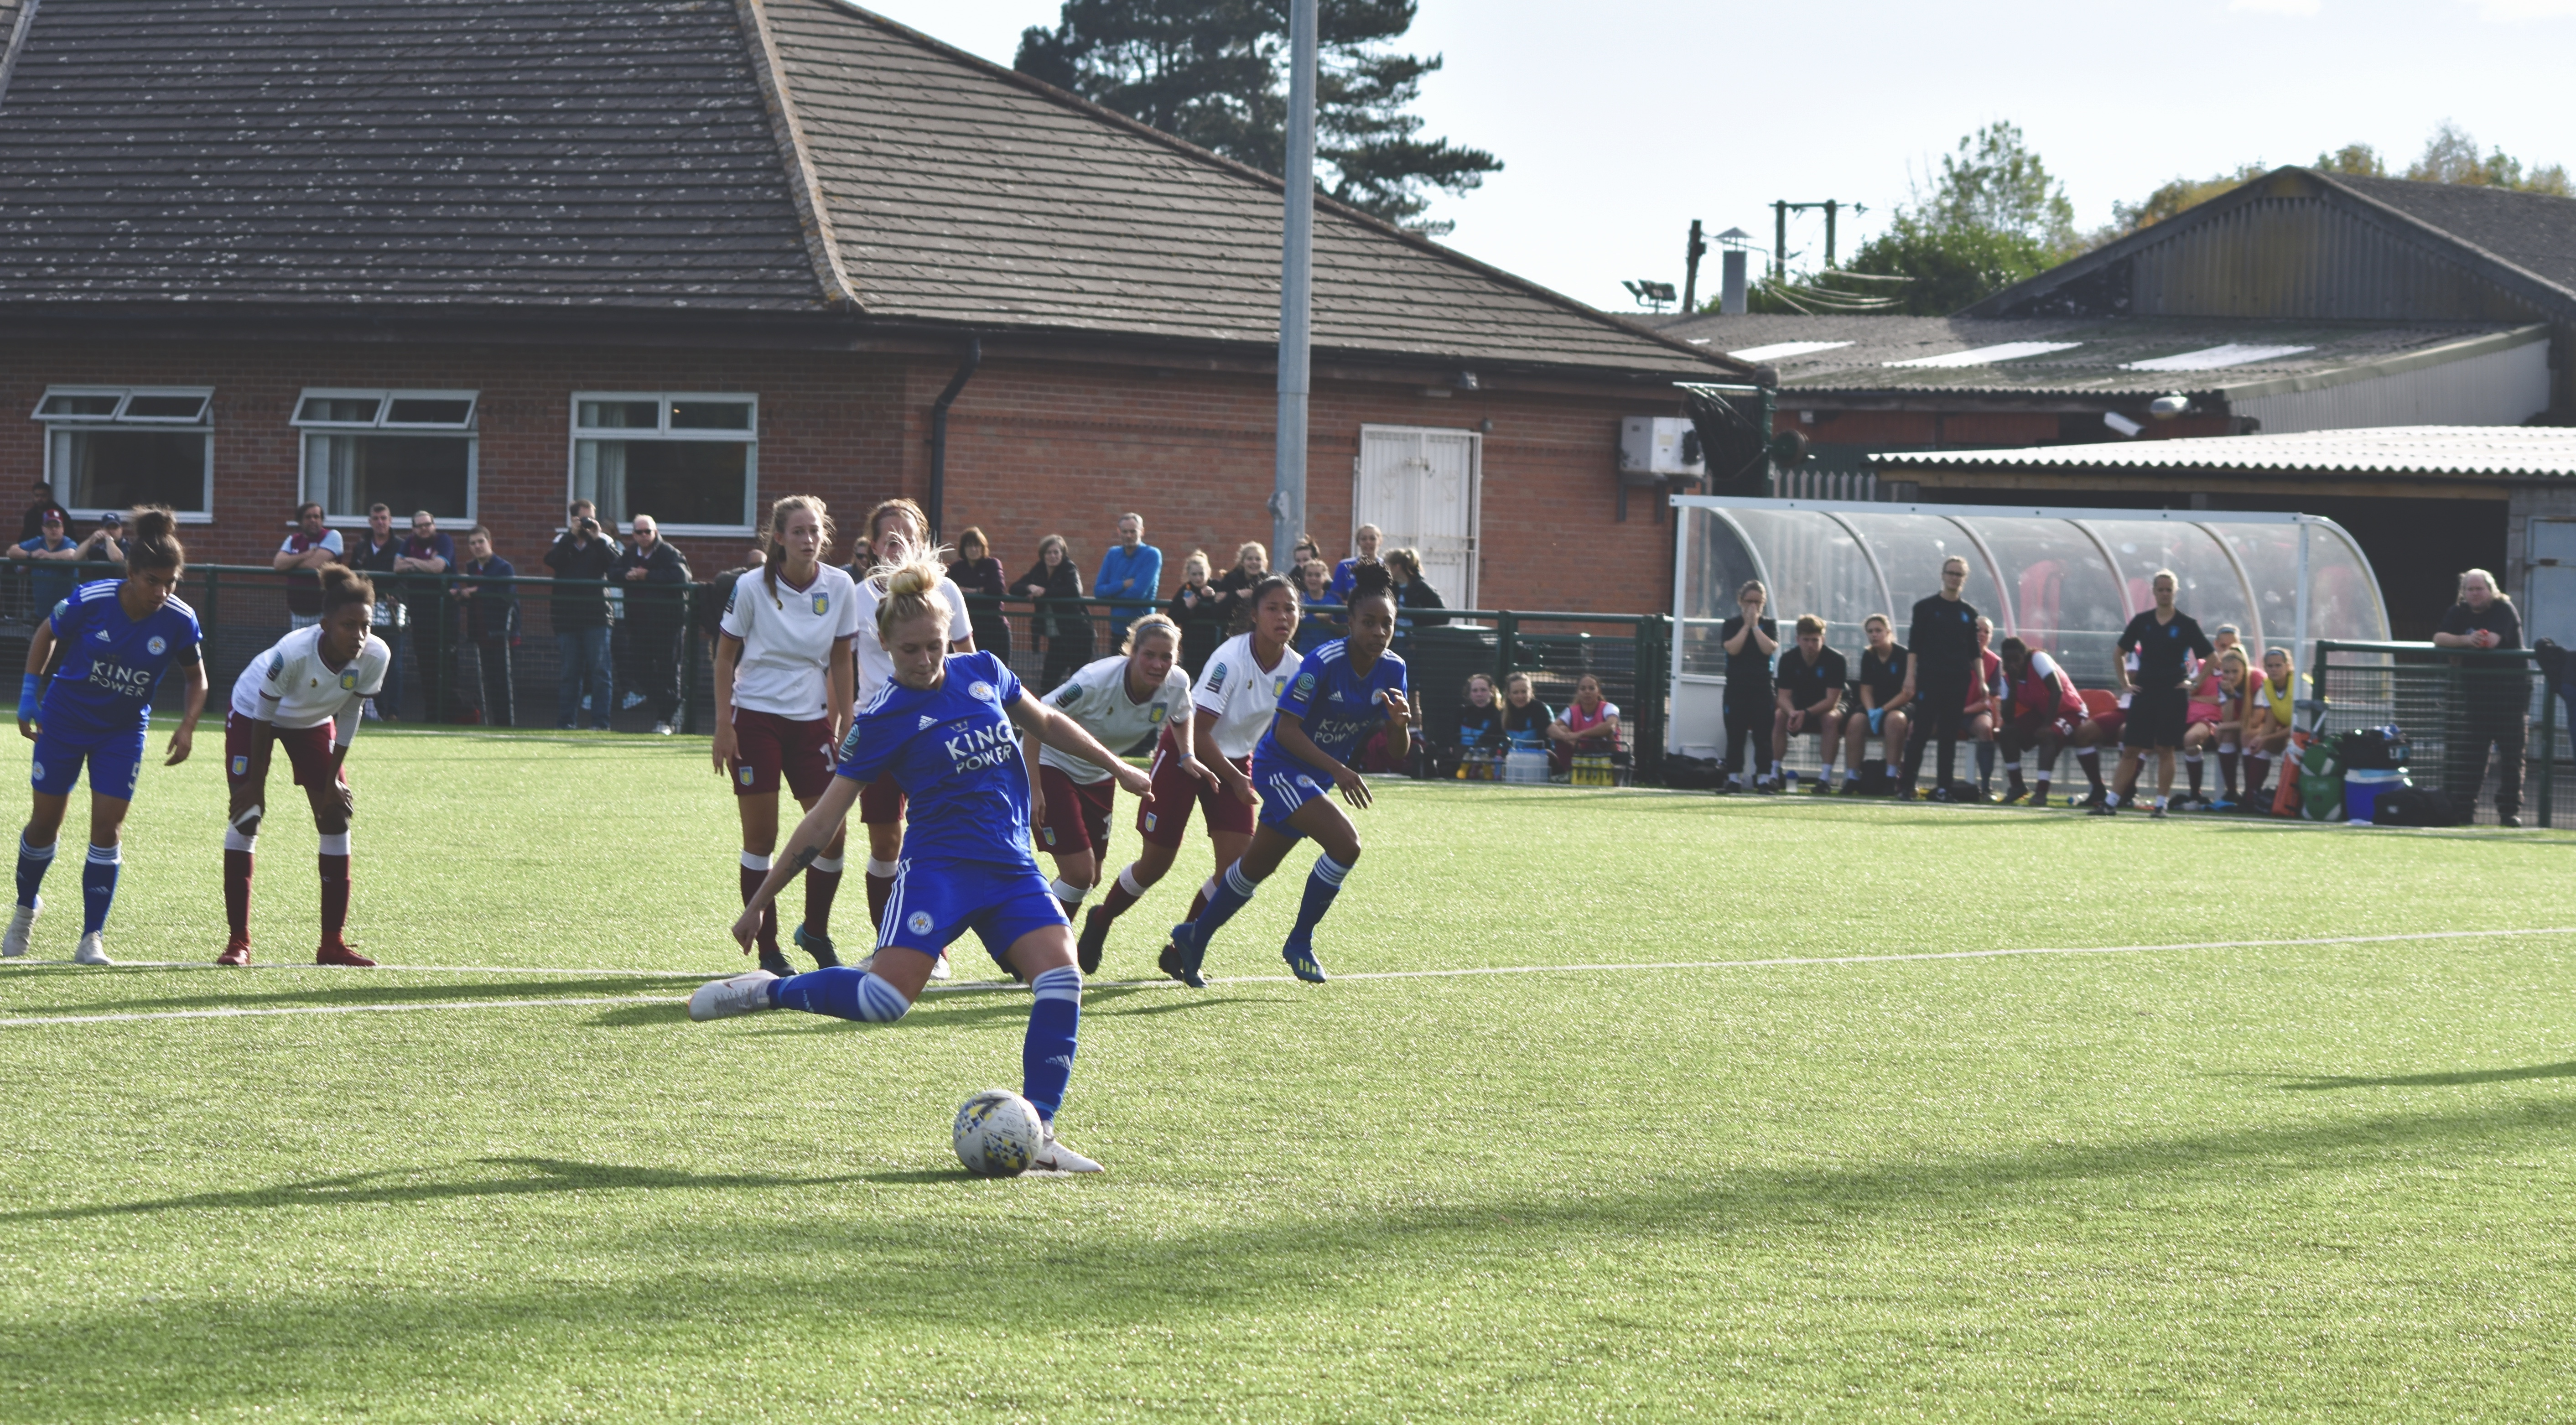 Rosie Axten provided an outlet on the wings for the Foxes and was on hand to calmly slot home from the penalty spot to net her fourth goal in the past three games.